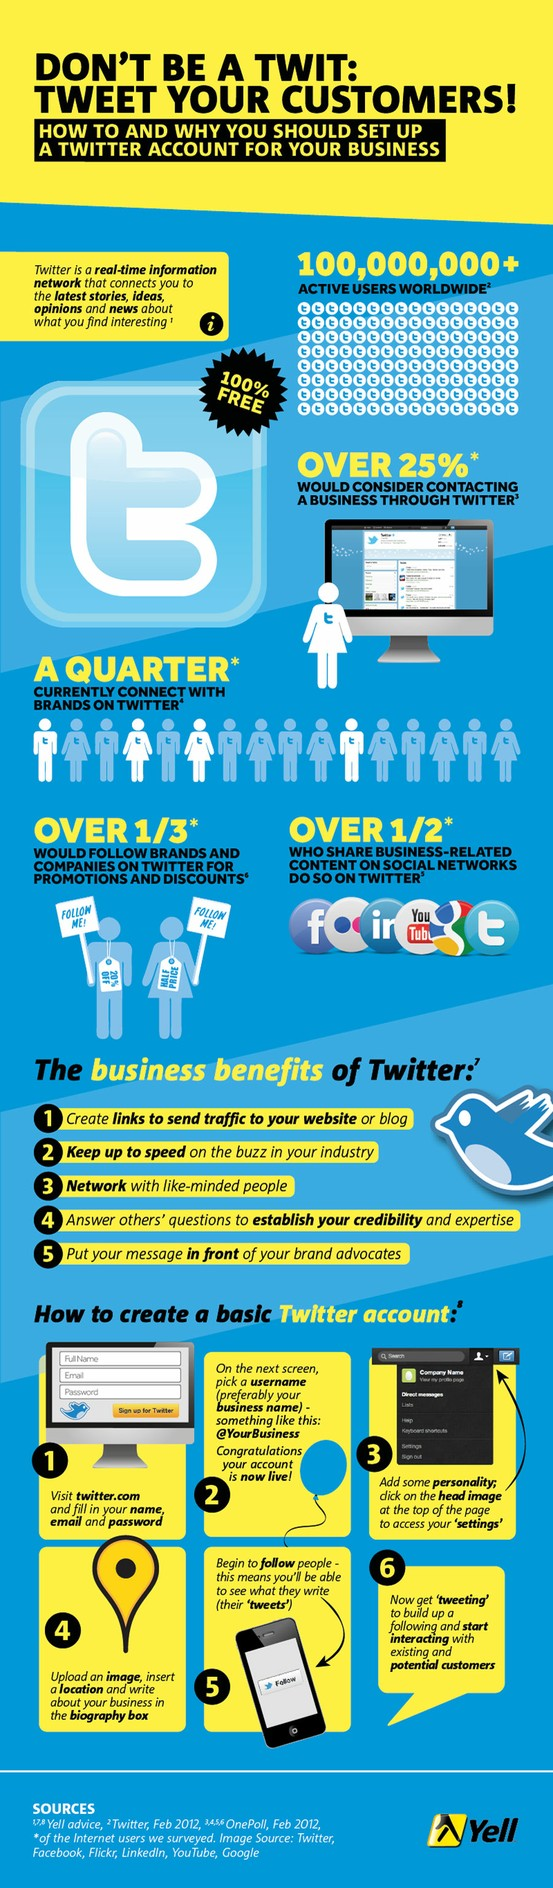 How and why you should set up a business account on Twitter